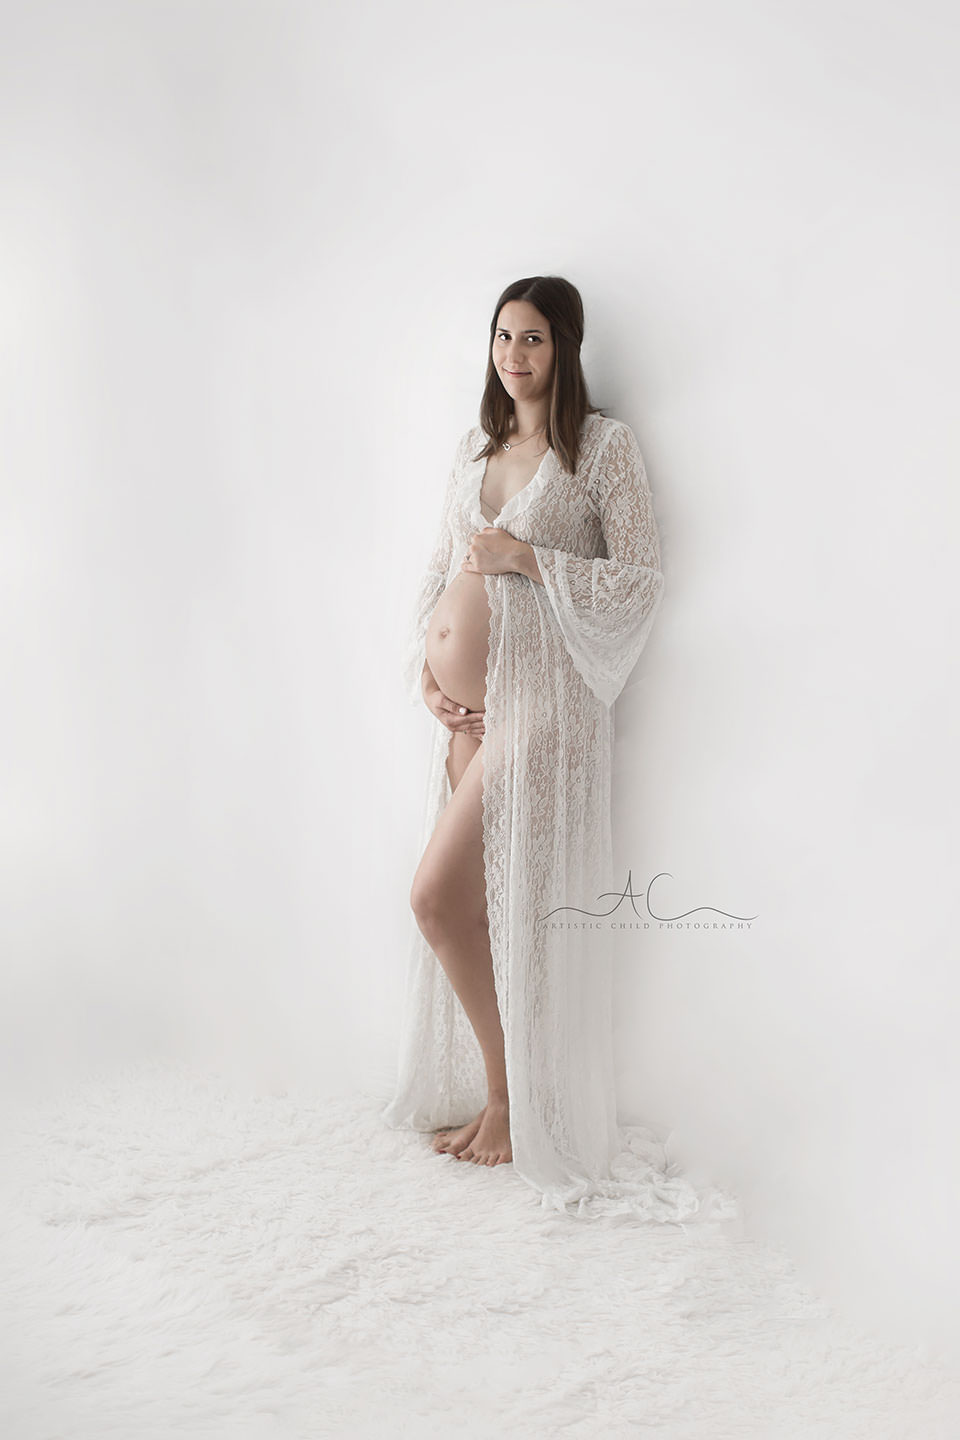 beautiful maternity image of a  woman wearing a lace pregnancy gown | Bromley